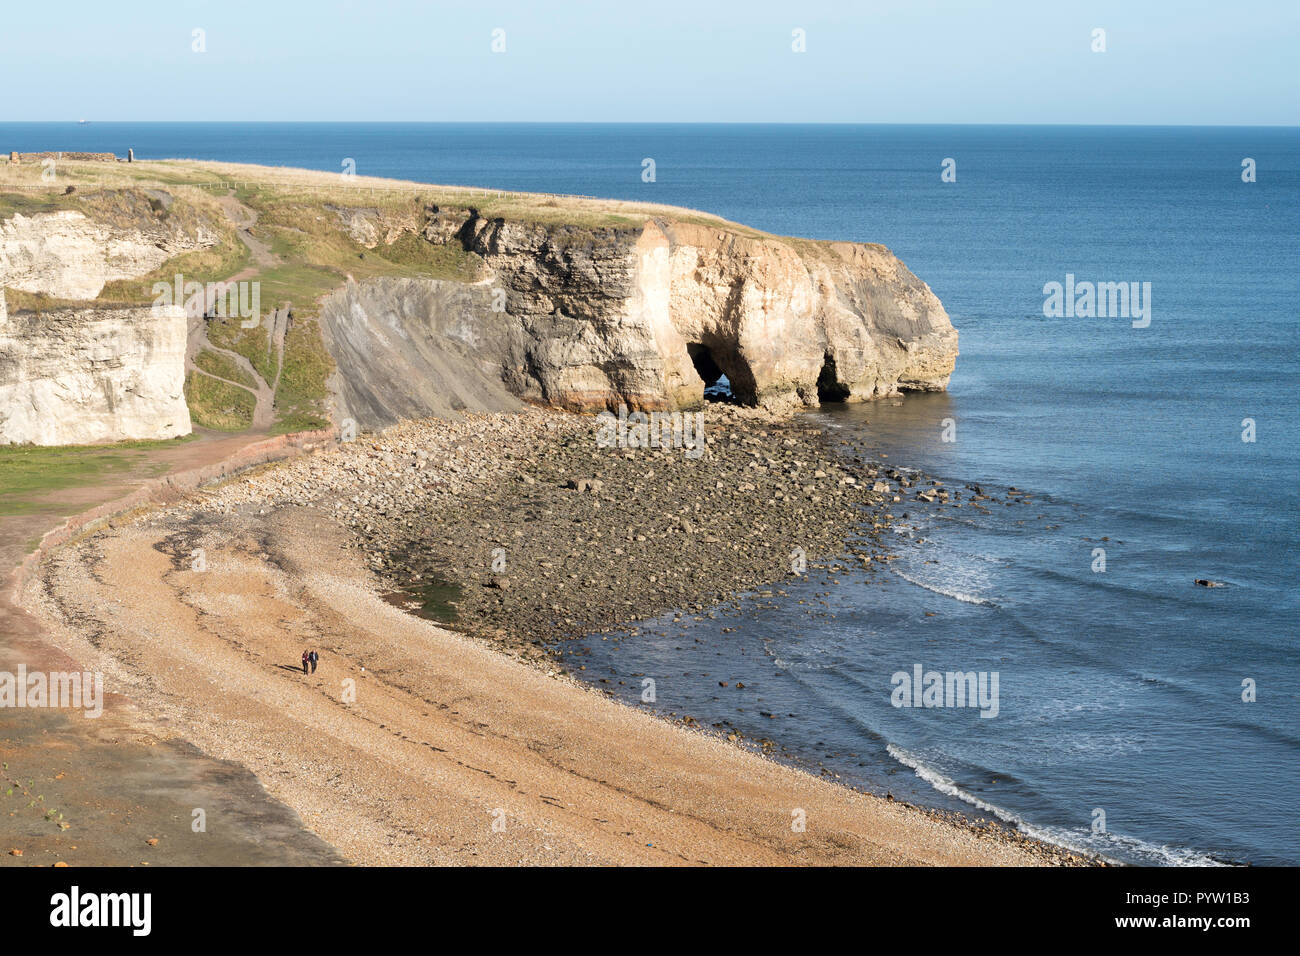 Noses Point at the north end of Blast Beach, Seaham, Co. Durham, England, UK - Stock Image